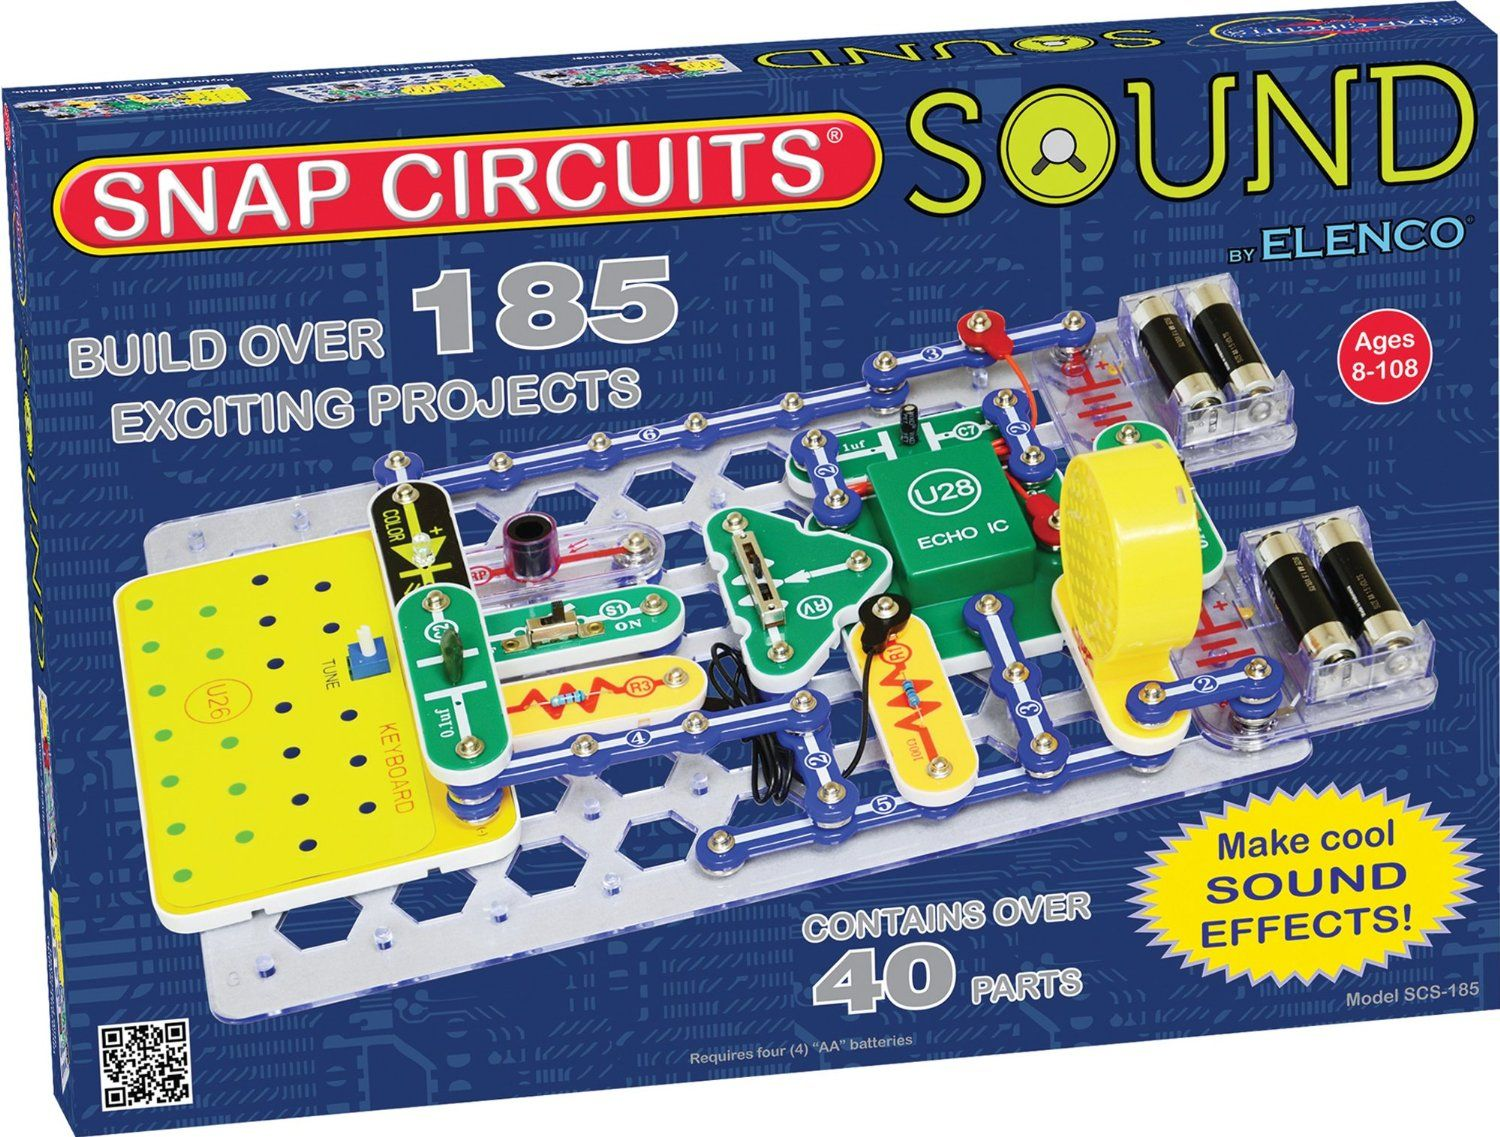 Science Electric Snap Circuit Kit Modern Design Of Wiring Diagram Circuits Pro 500 Scientificsonlinecom Sound These Are Always Great Sets For Inventor Type Rh Pinterest Com